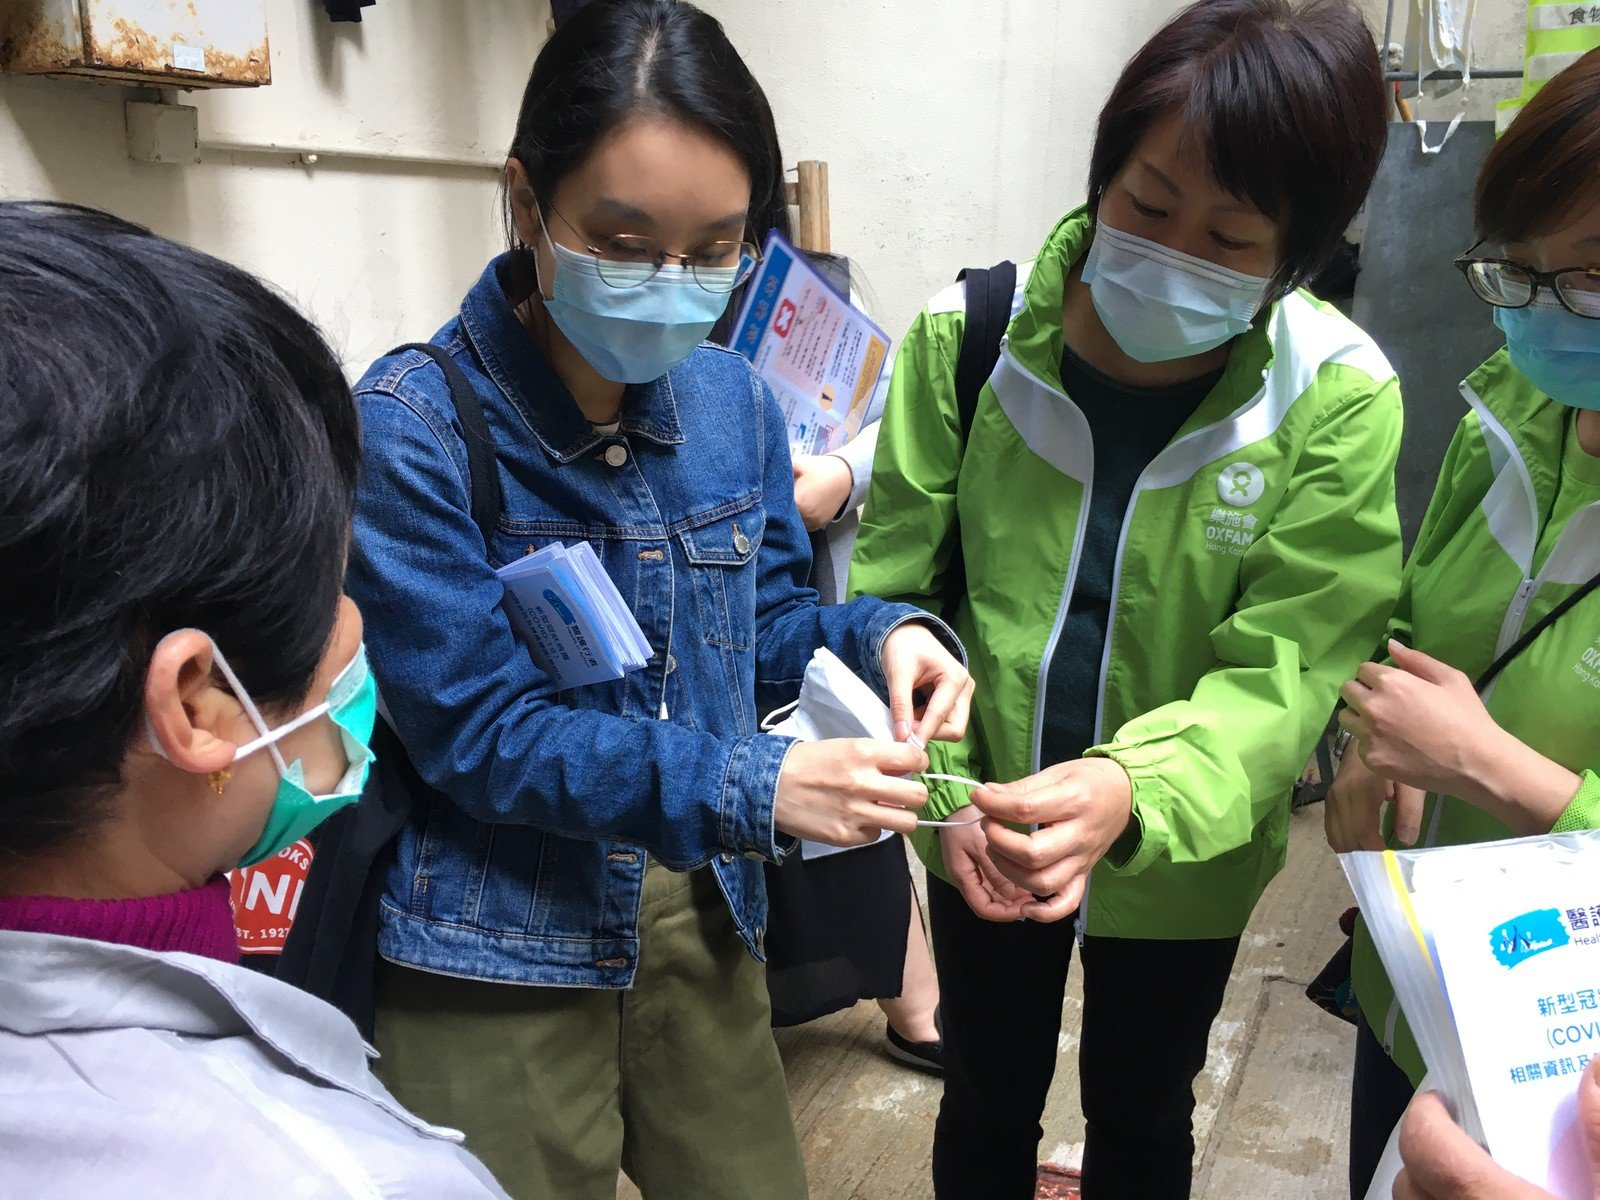 Staff from Oxfam Hong Kong and Health In Action explained how to put on and take off a mask properly at the Oil Street Refuse Collection Point.